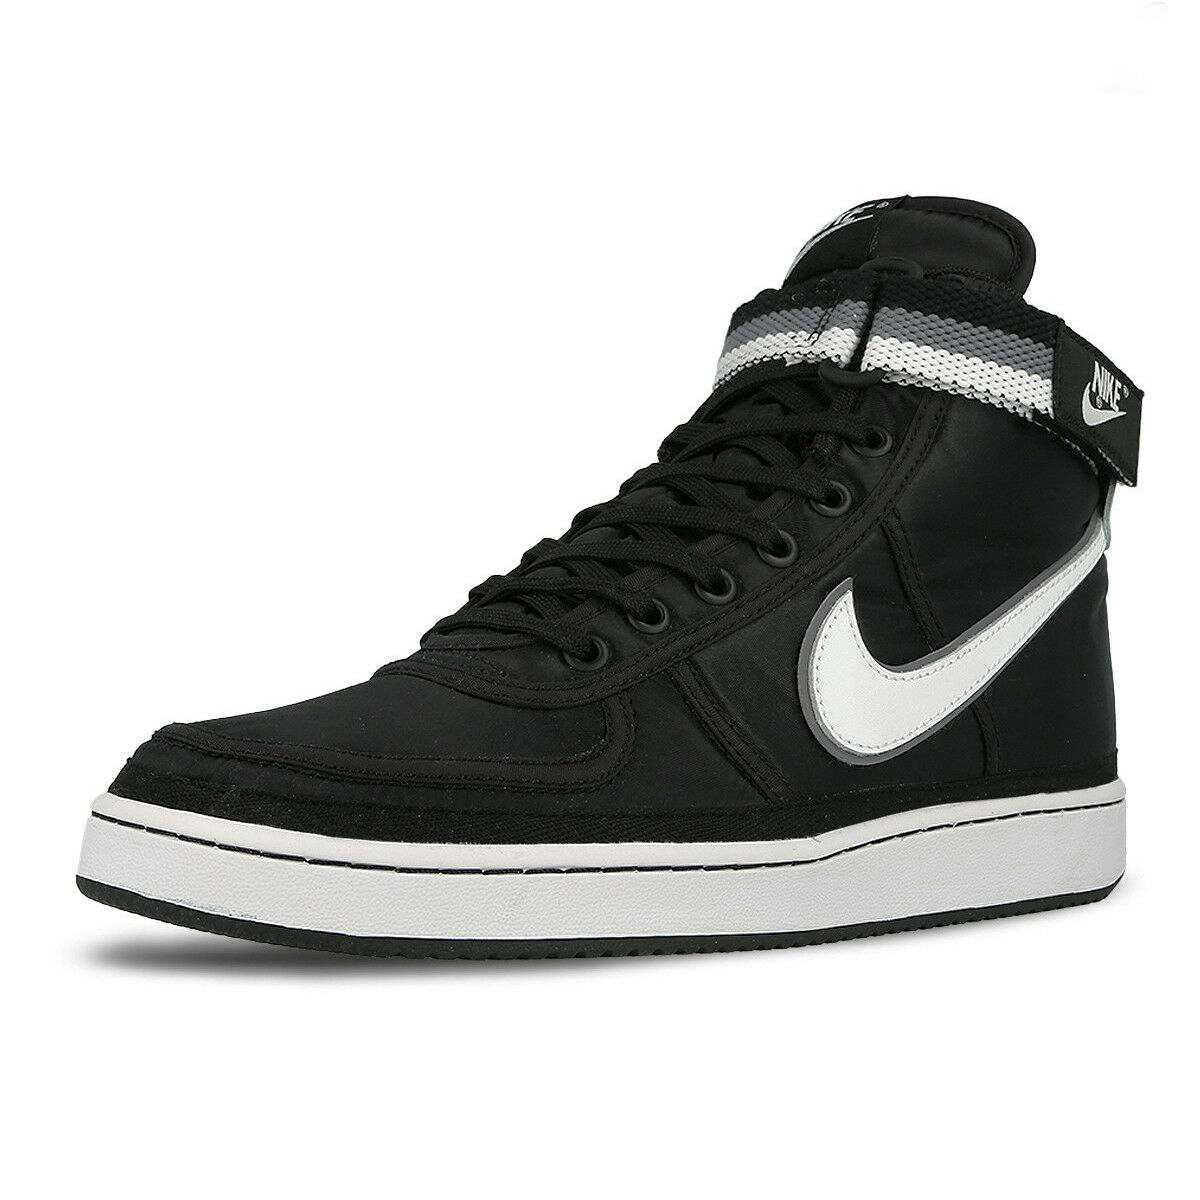 8798043e070799 Nike Vandal High Supreme Black White Cool Grey Classic Shoes Sneakers  318330-001